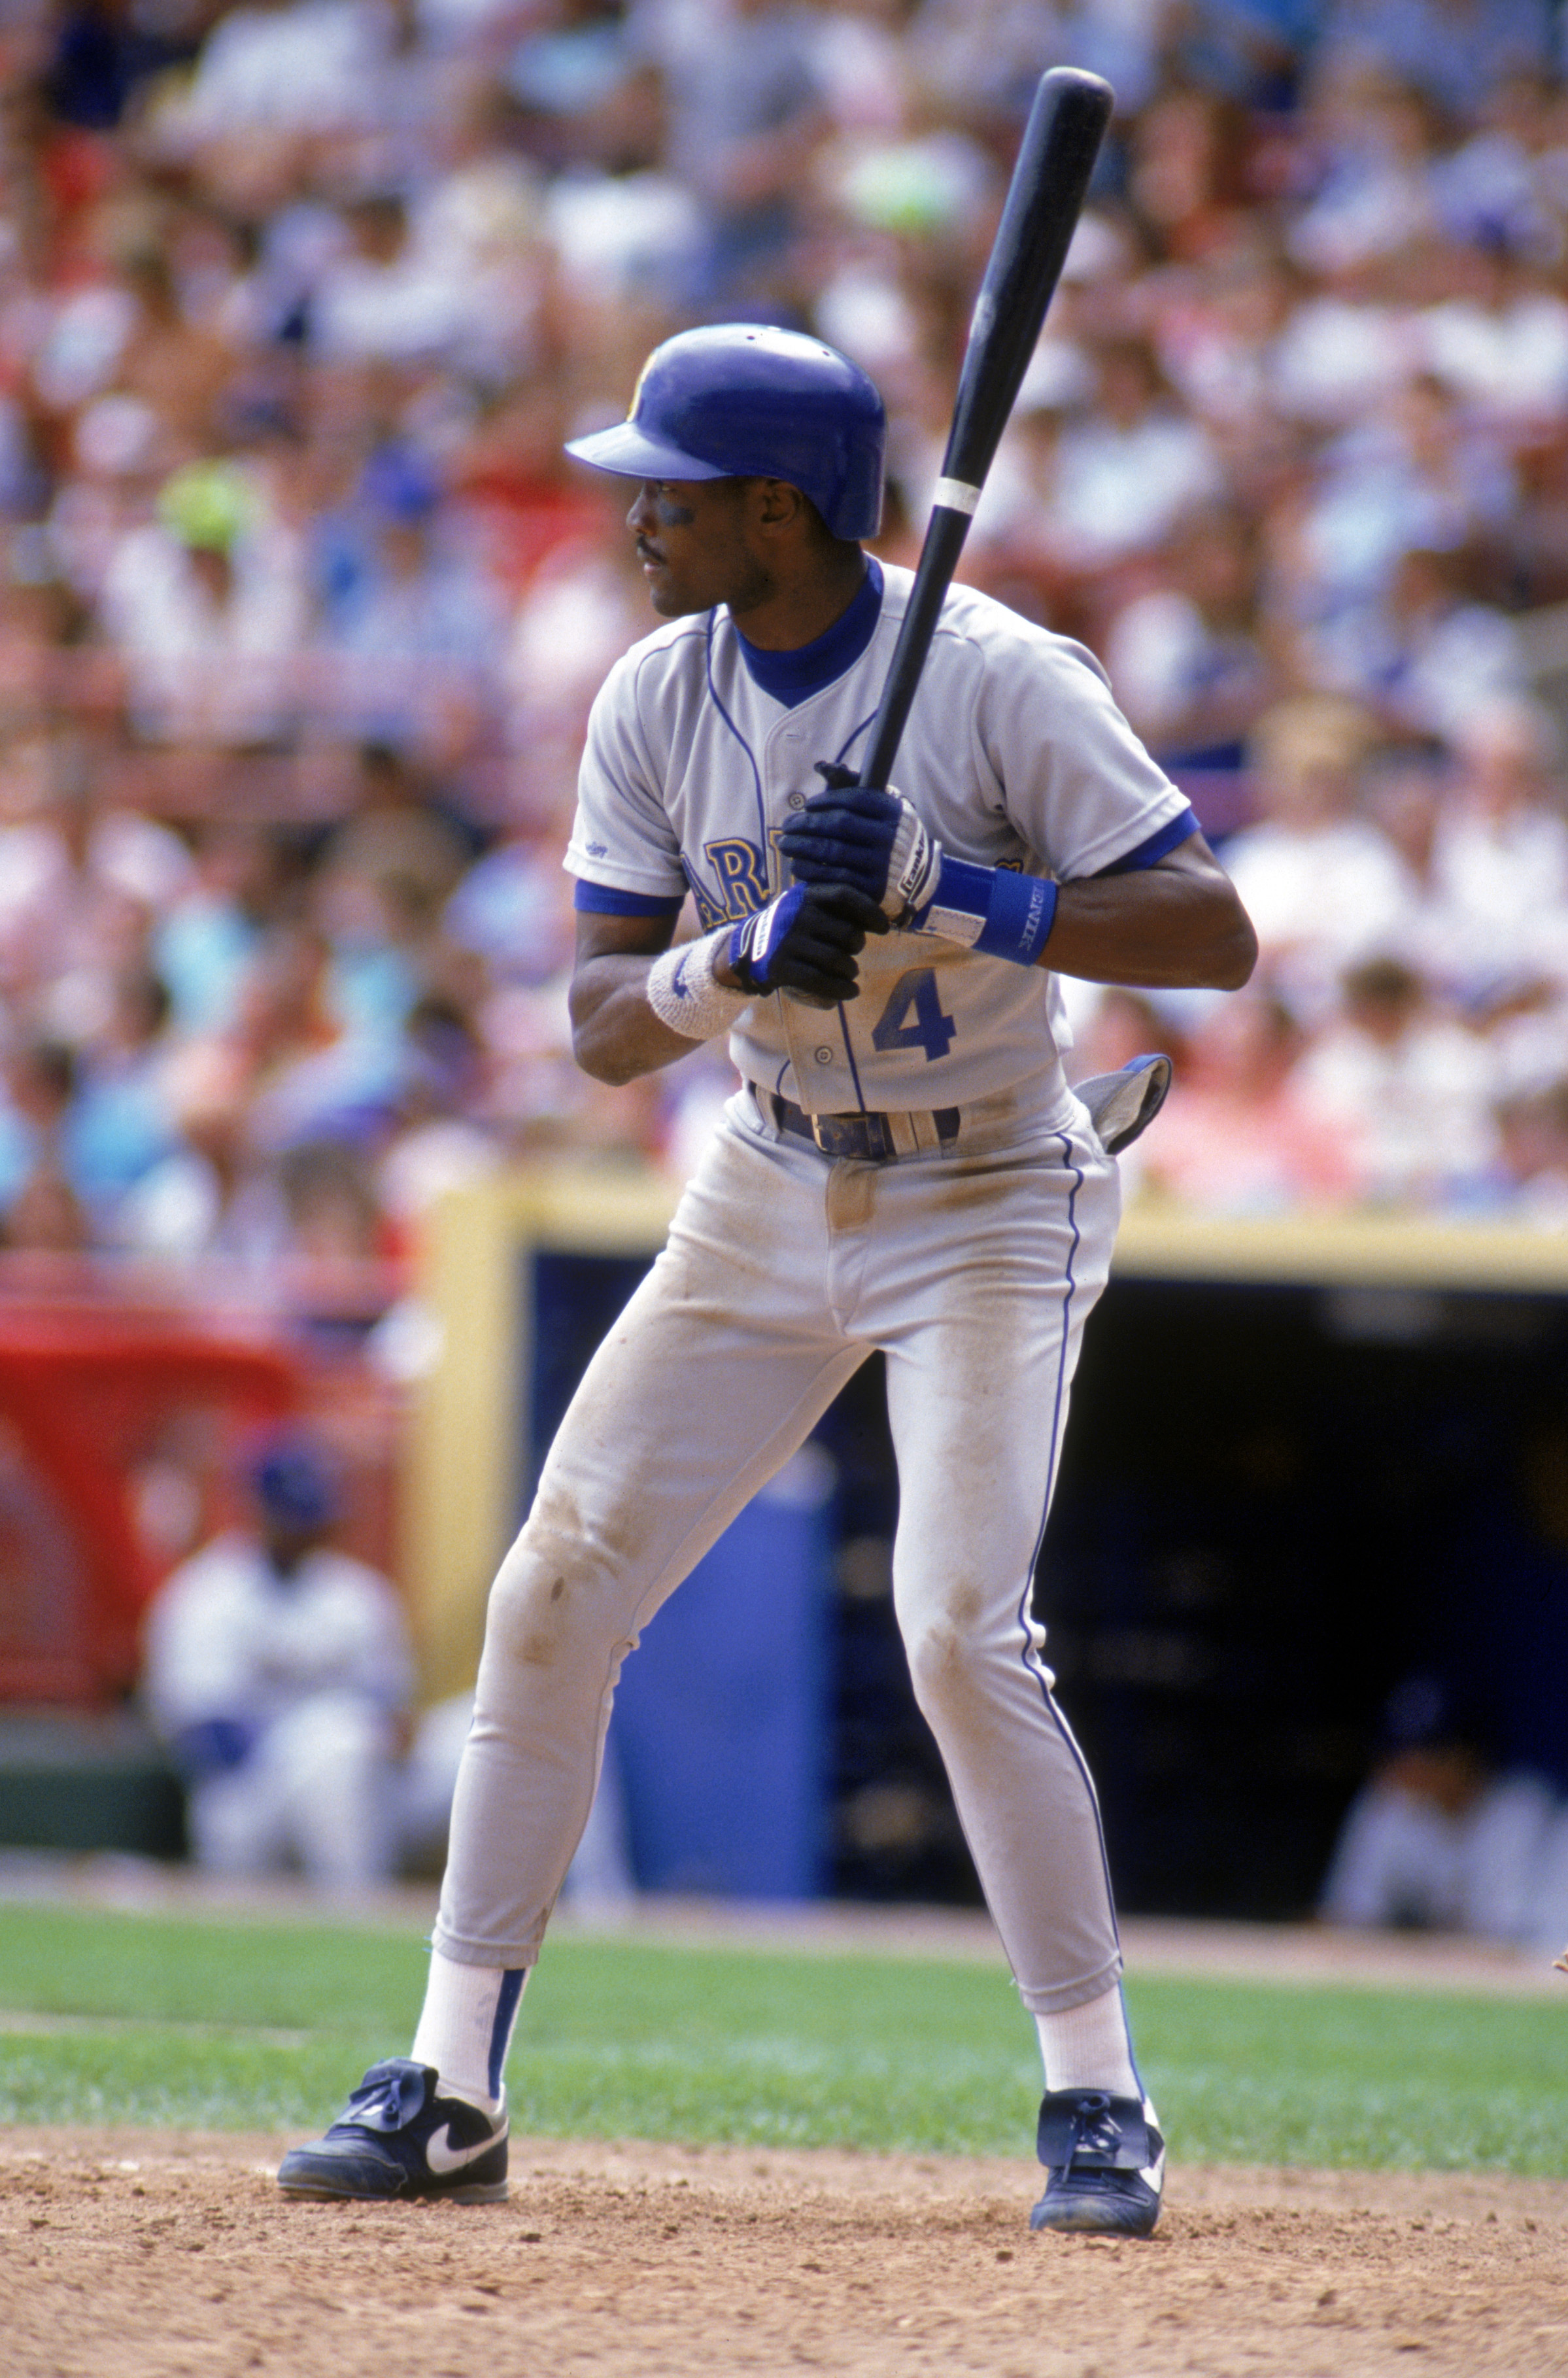 MILWAUKEE - 1990:  Harold Reynolds #4 of the Seattle Mariners bats during a game in the 1990 season against the Milwaukee Brewers at County Stadium in Milwaukee, Wisconsin.  (Photo by Jonathan Daniel/Getty Images)